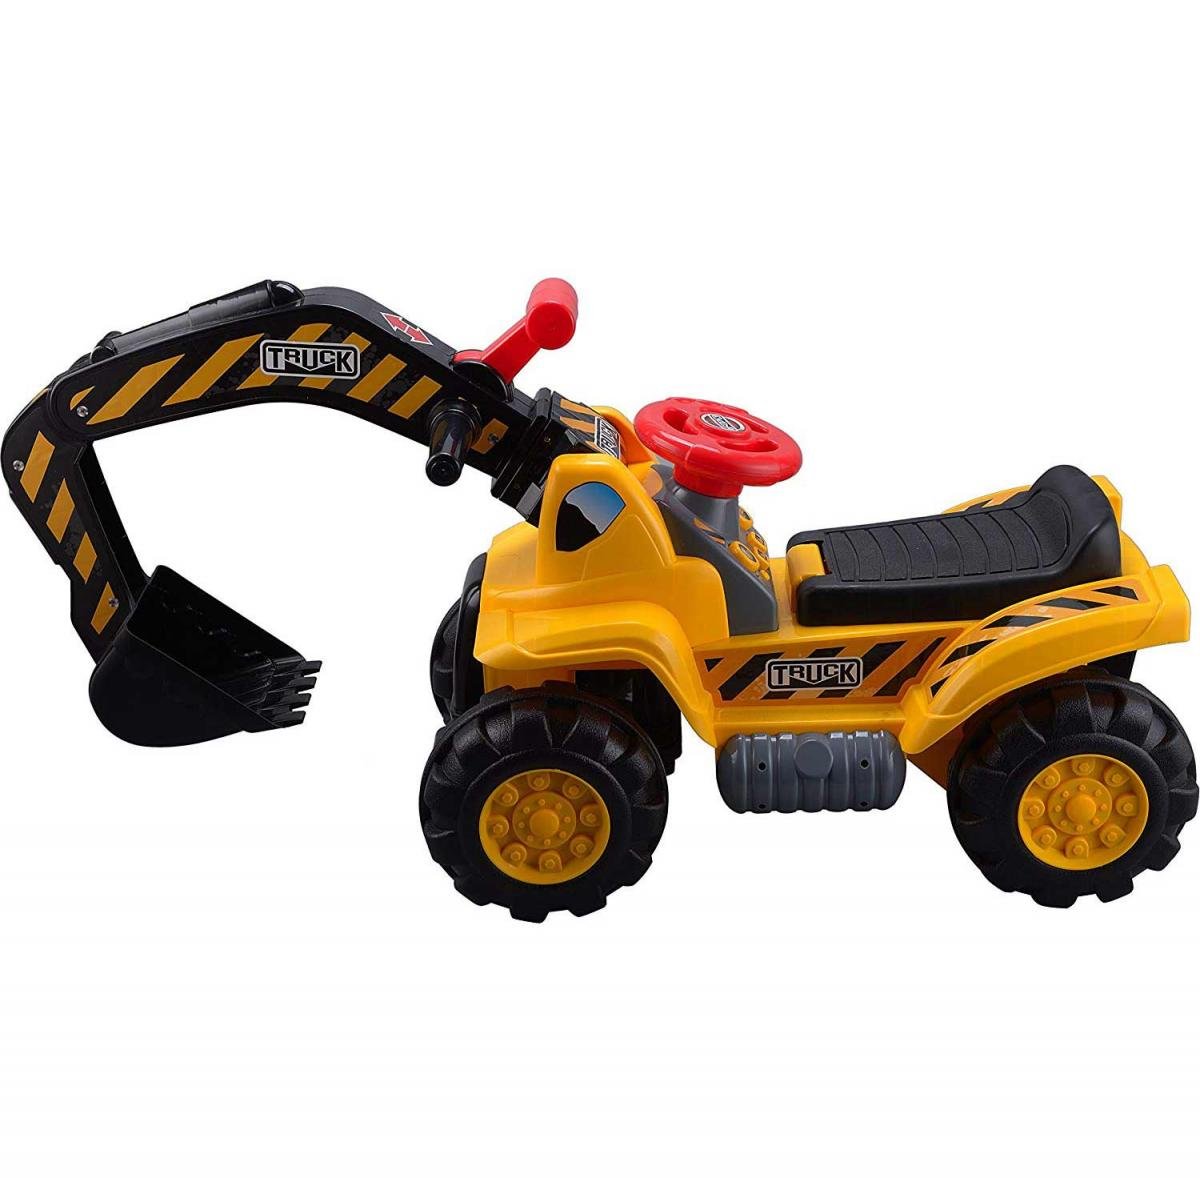 Play22 Toy Tractors for Kids Ride On Excavator